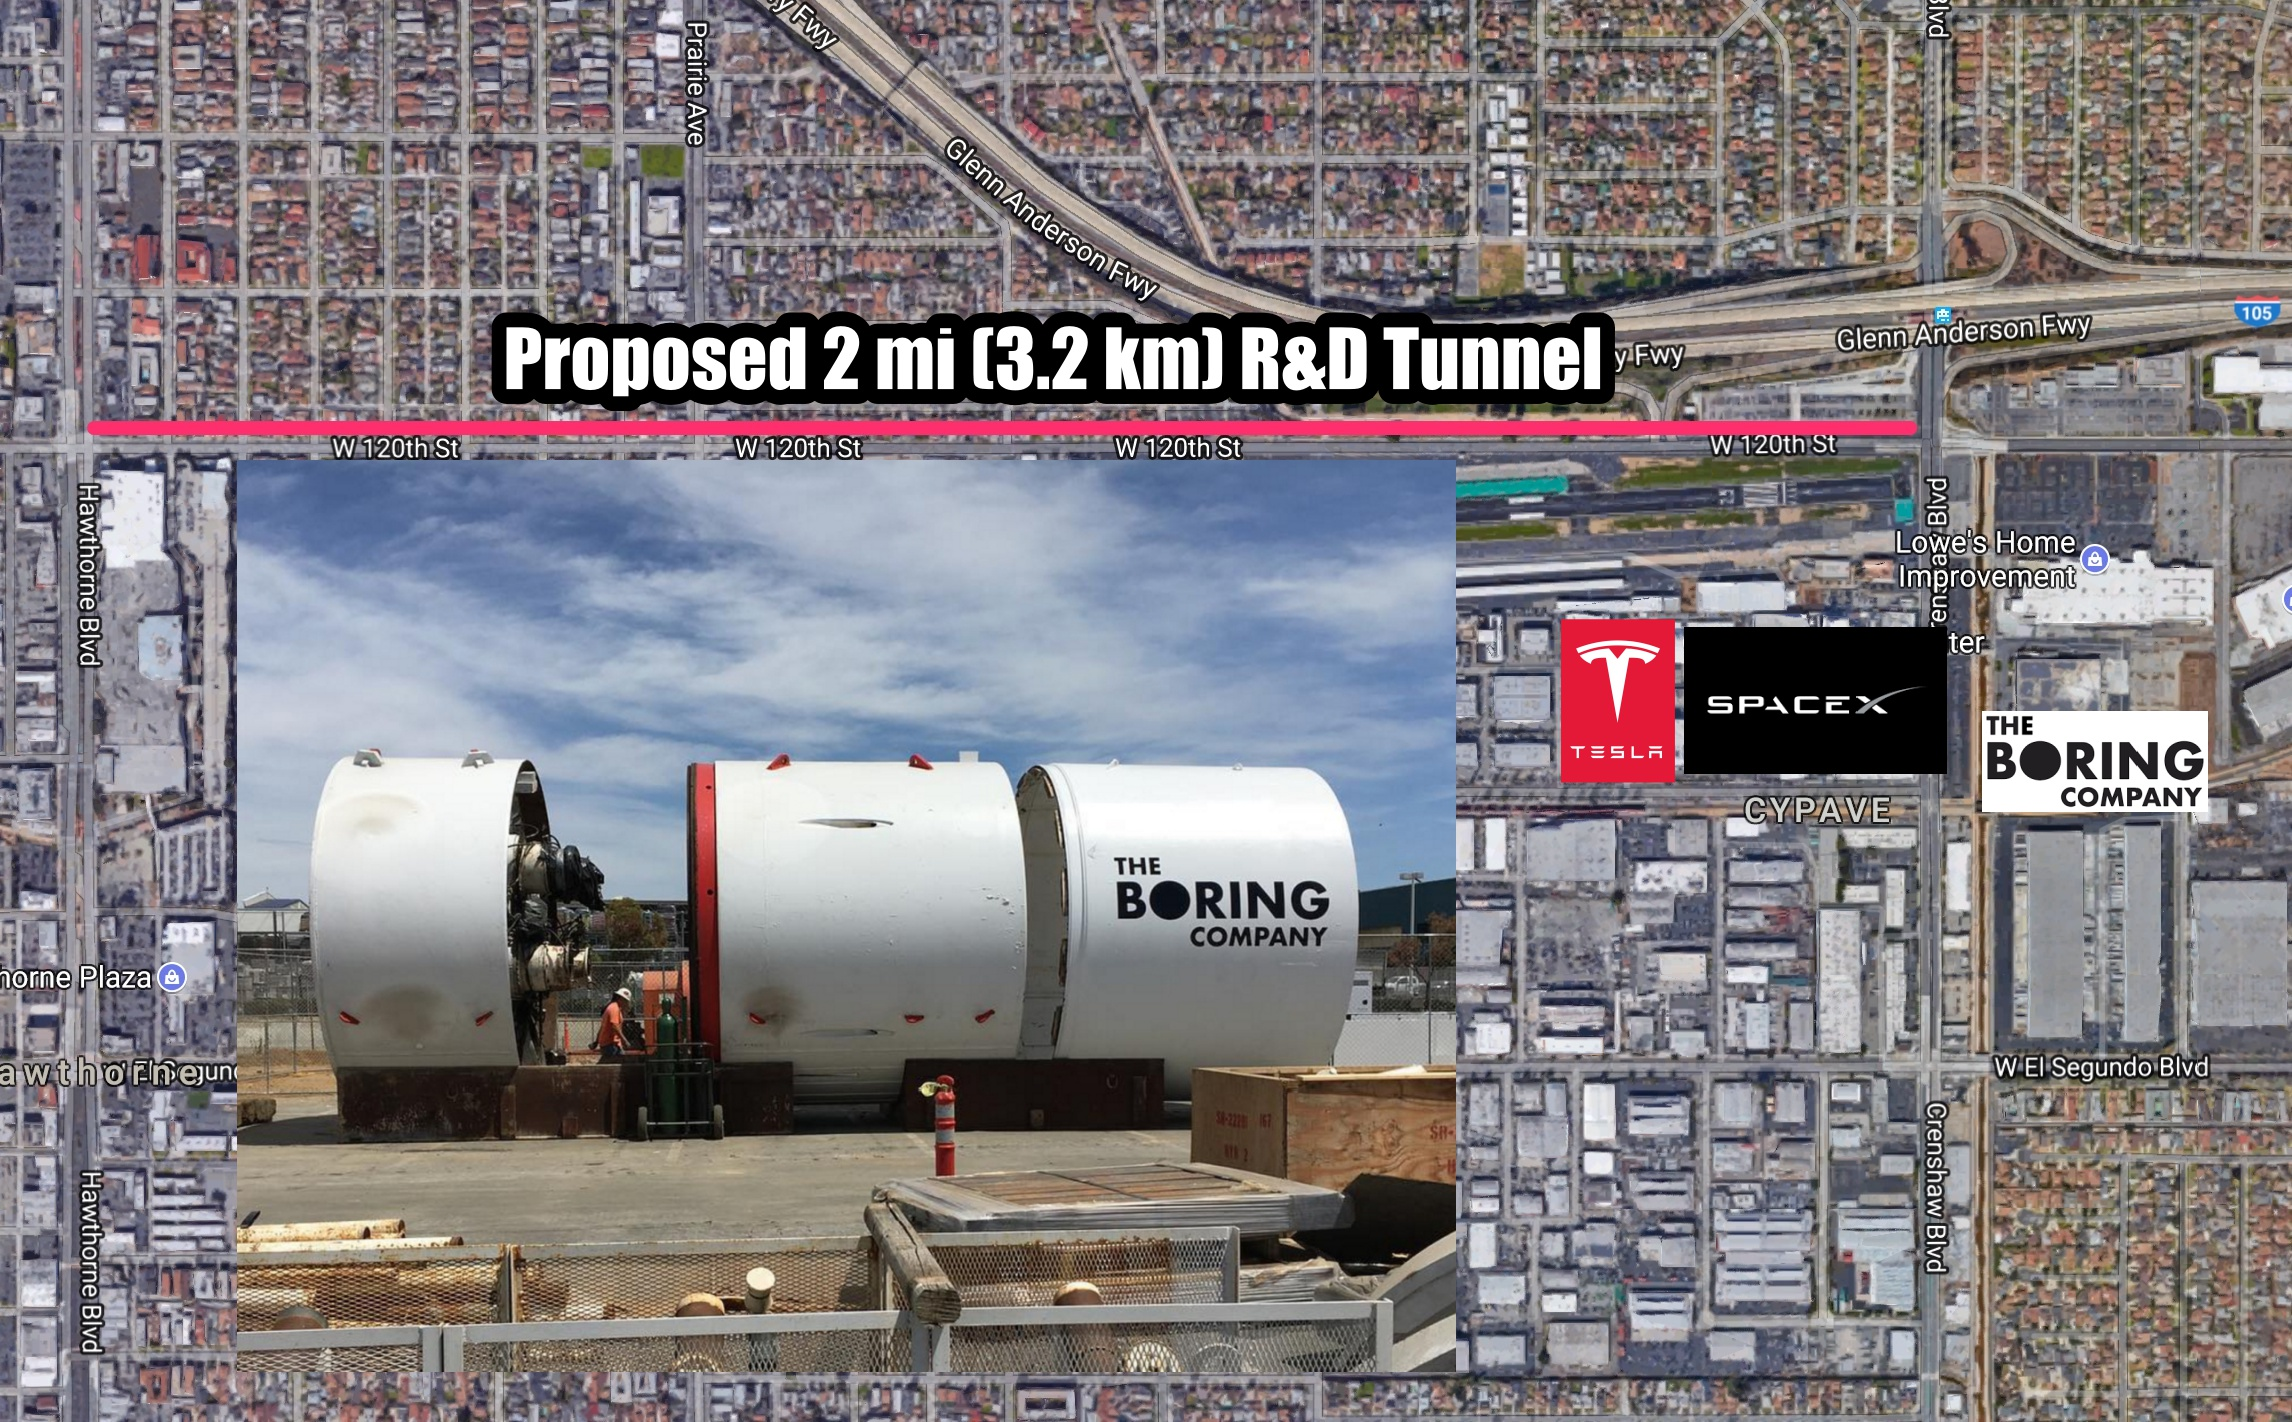 Boring Building Material : The boring company pitches mi km r d tunnel to